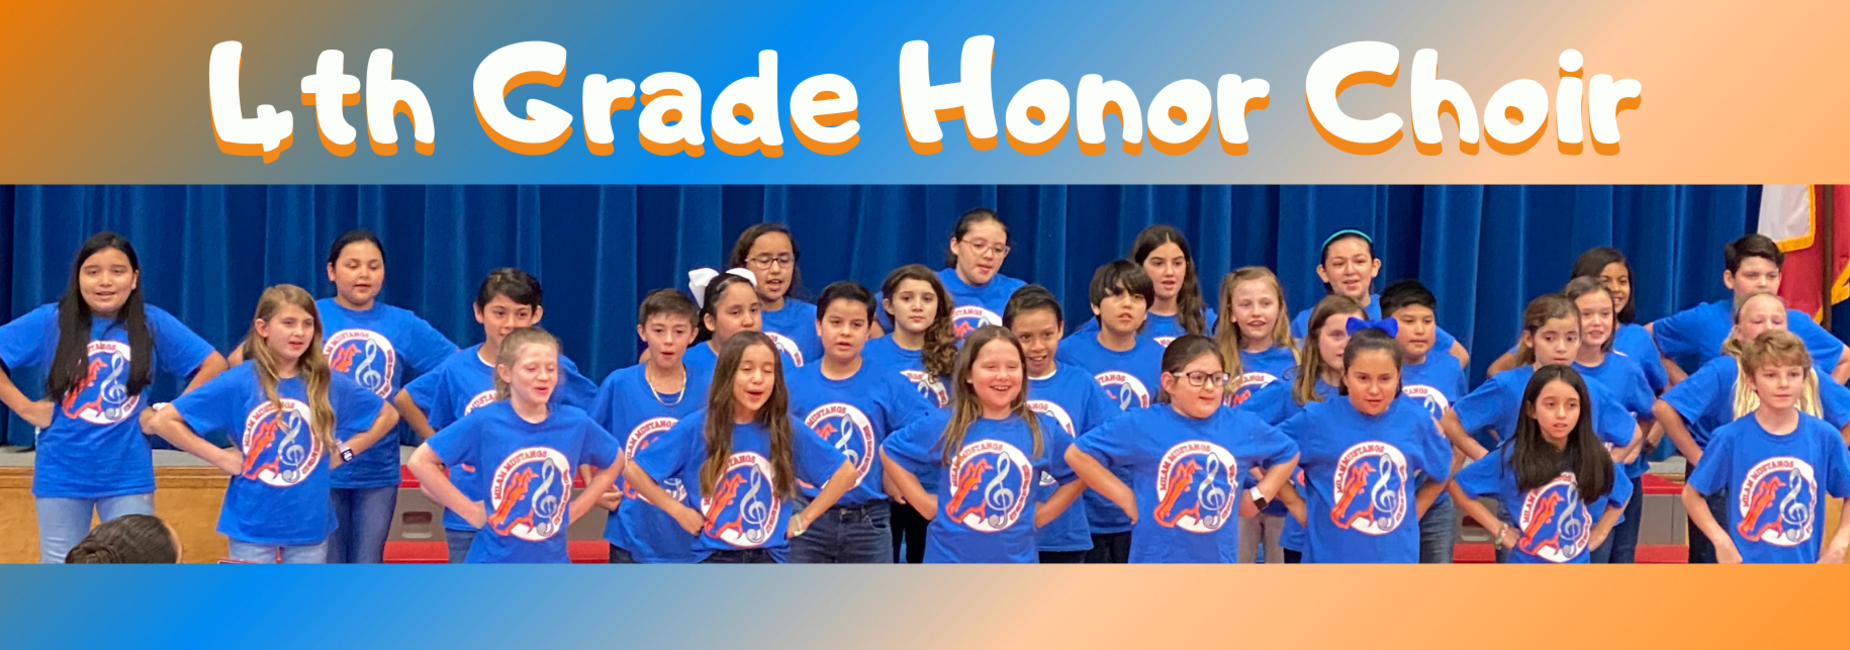 4th Grade Honor Choir